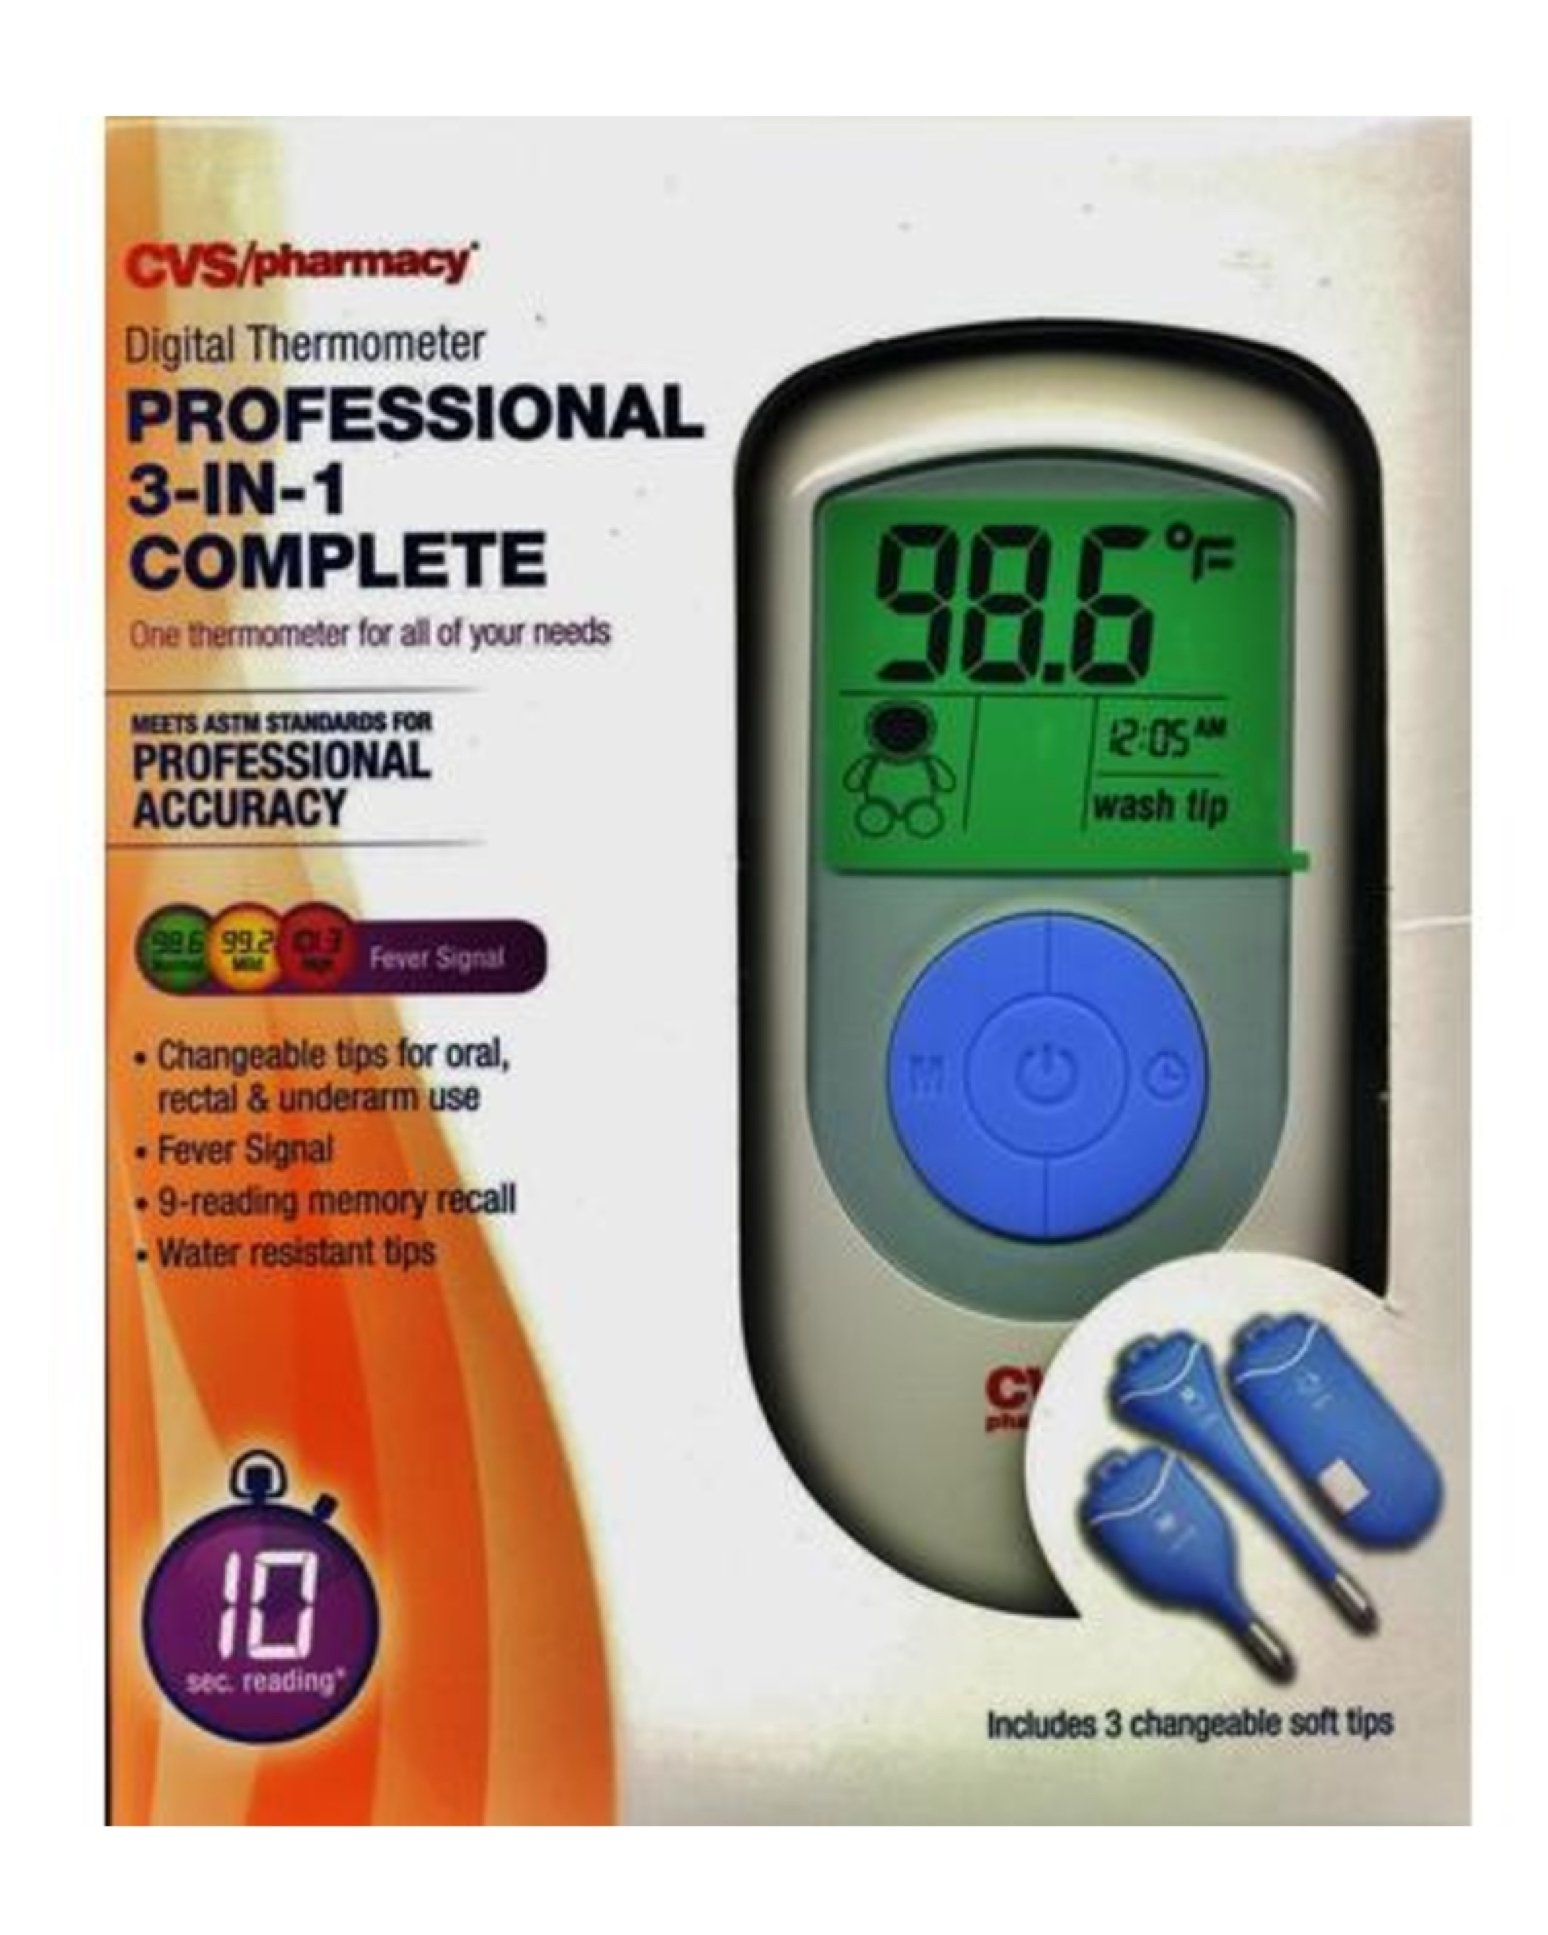 10 Second Reading, Number 1 Hospital Choice, CVS Digital Thermometer Professional 3-in-1 Complete Oral, Rectum, Underarm